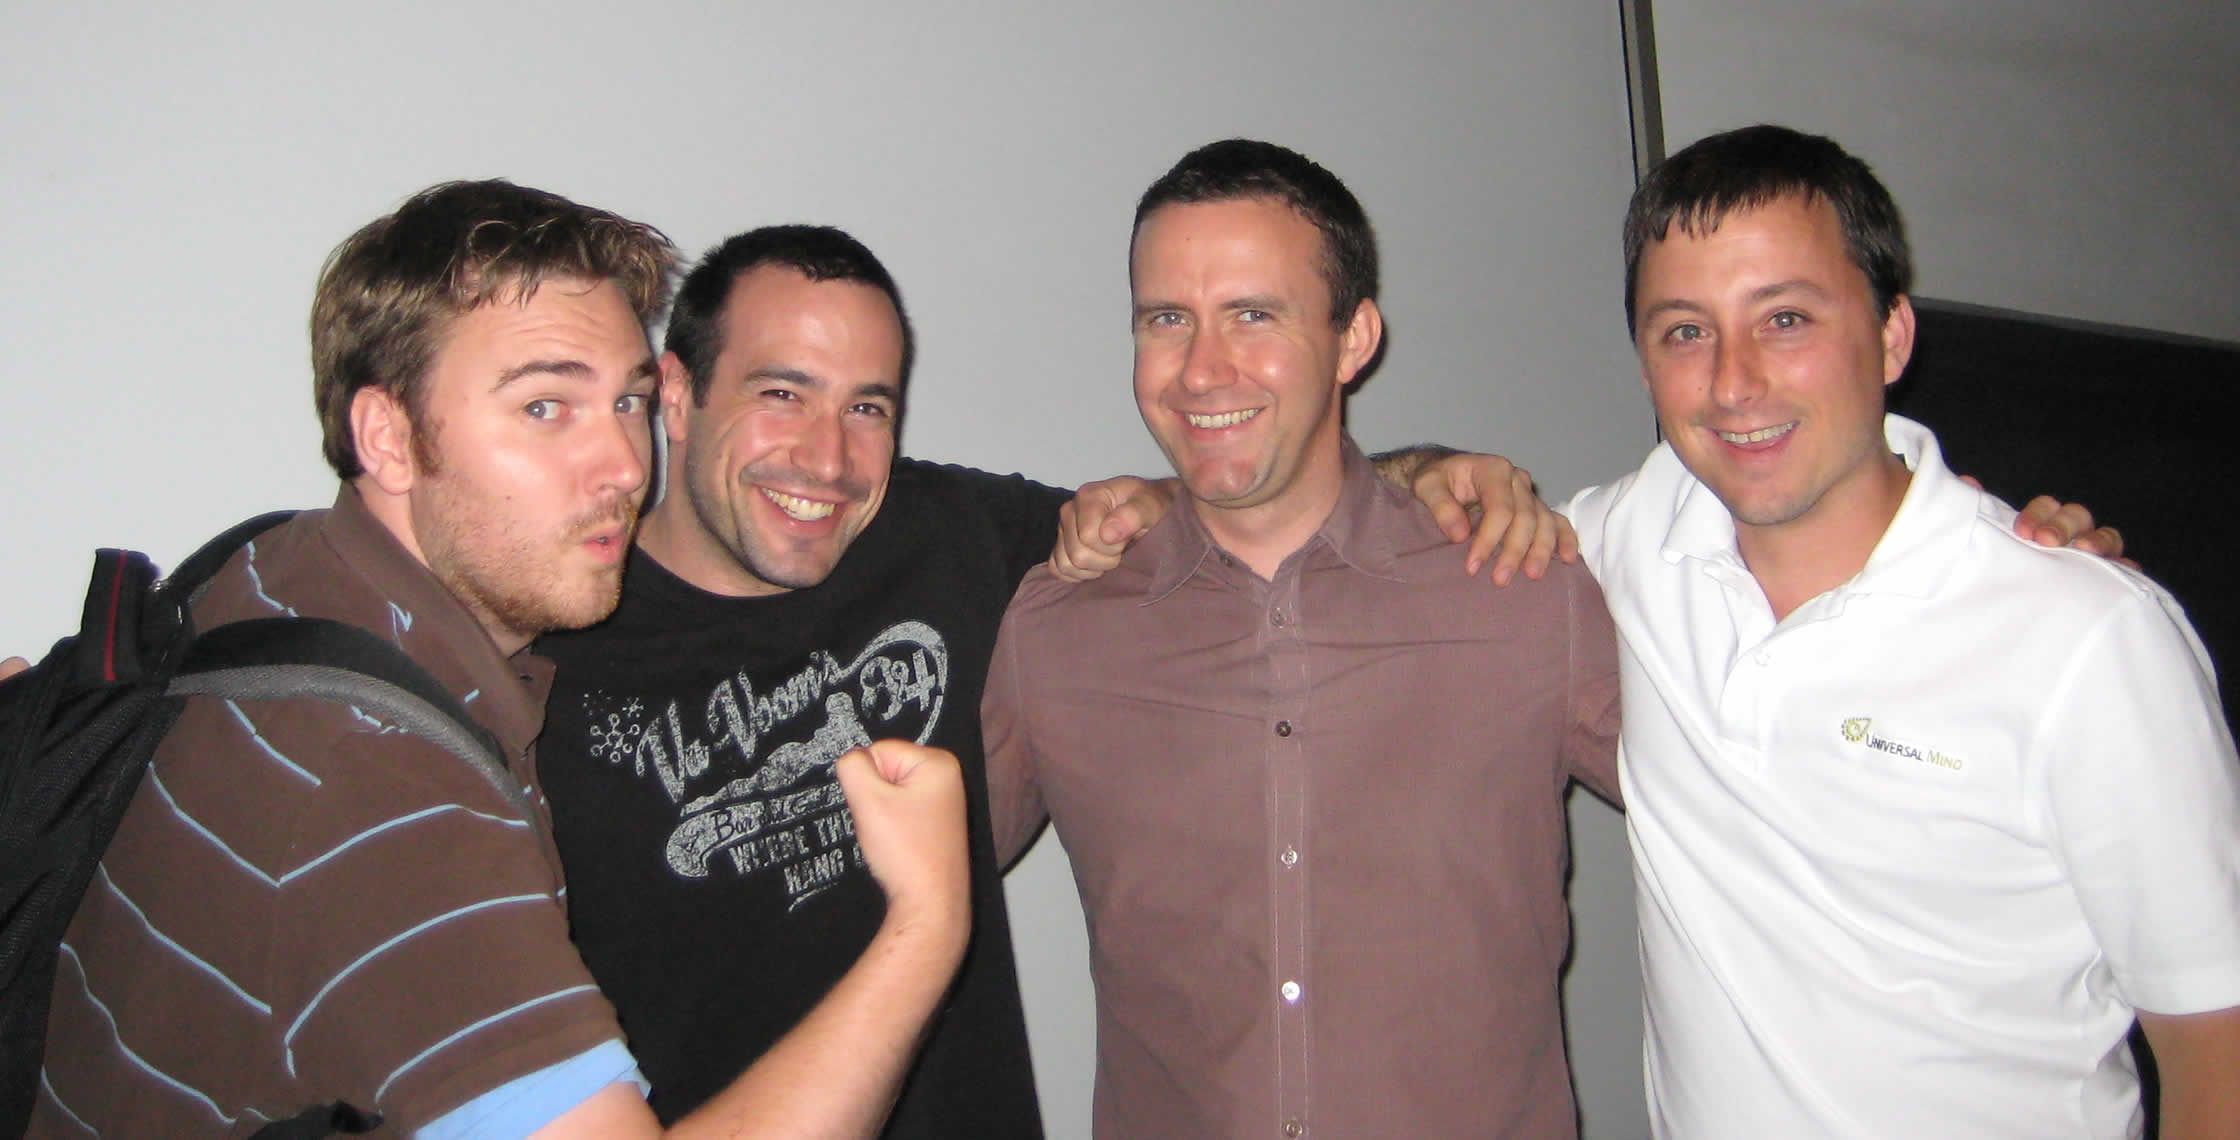 Ben Nadel at the New York ColdFusion User Group (Jul. 2008) with: Simon Free and Peter Bell and Dan Wilson